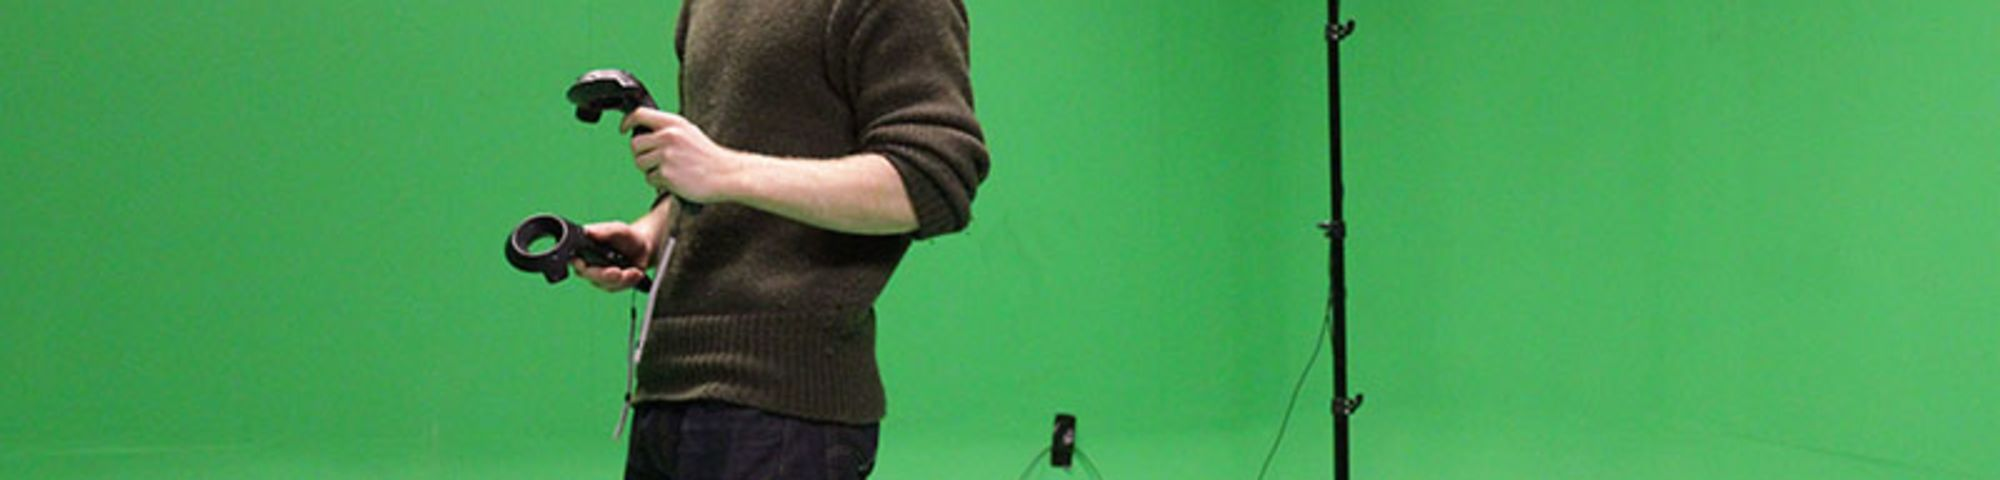 Acts-Re-Acts_Green-Screen_small